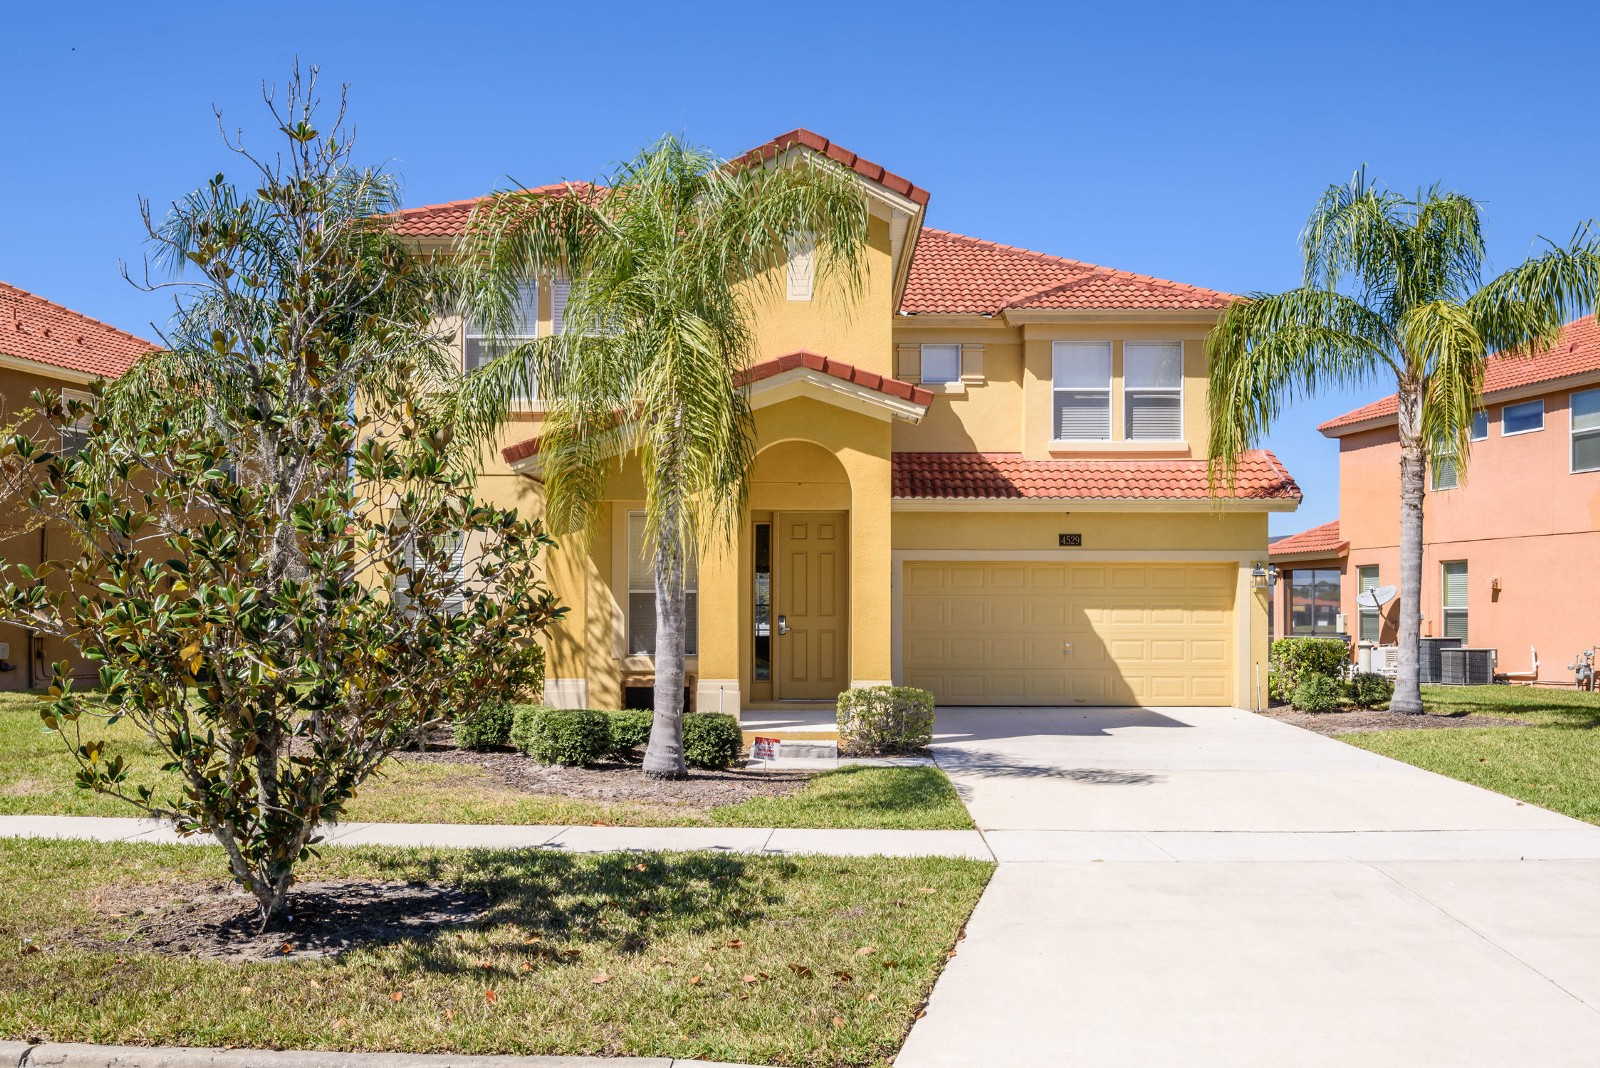 Towns Realty Is One Of The Best Sources Where You Can View The Best Home  For Sale Winter Garden FL. Winter Garden Is One Of The Fastest Growing  Areas In All ...